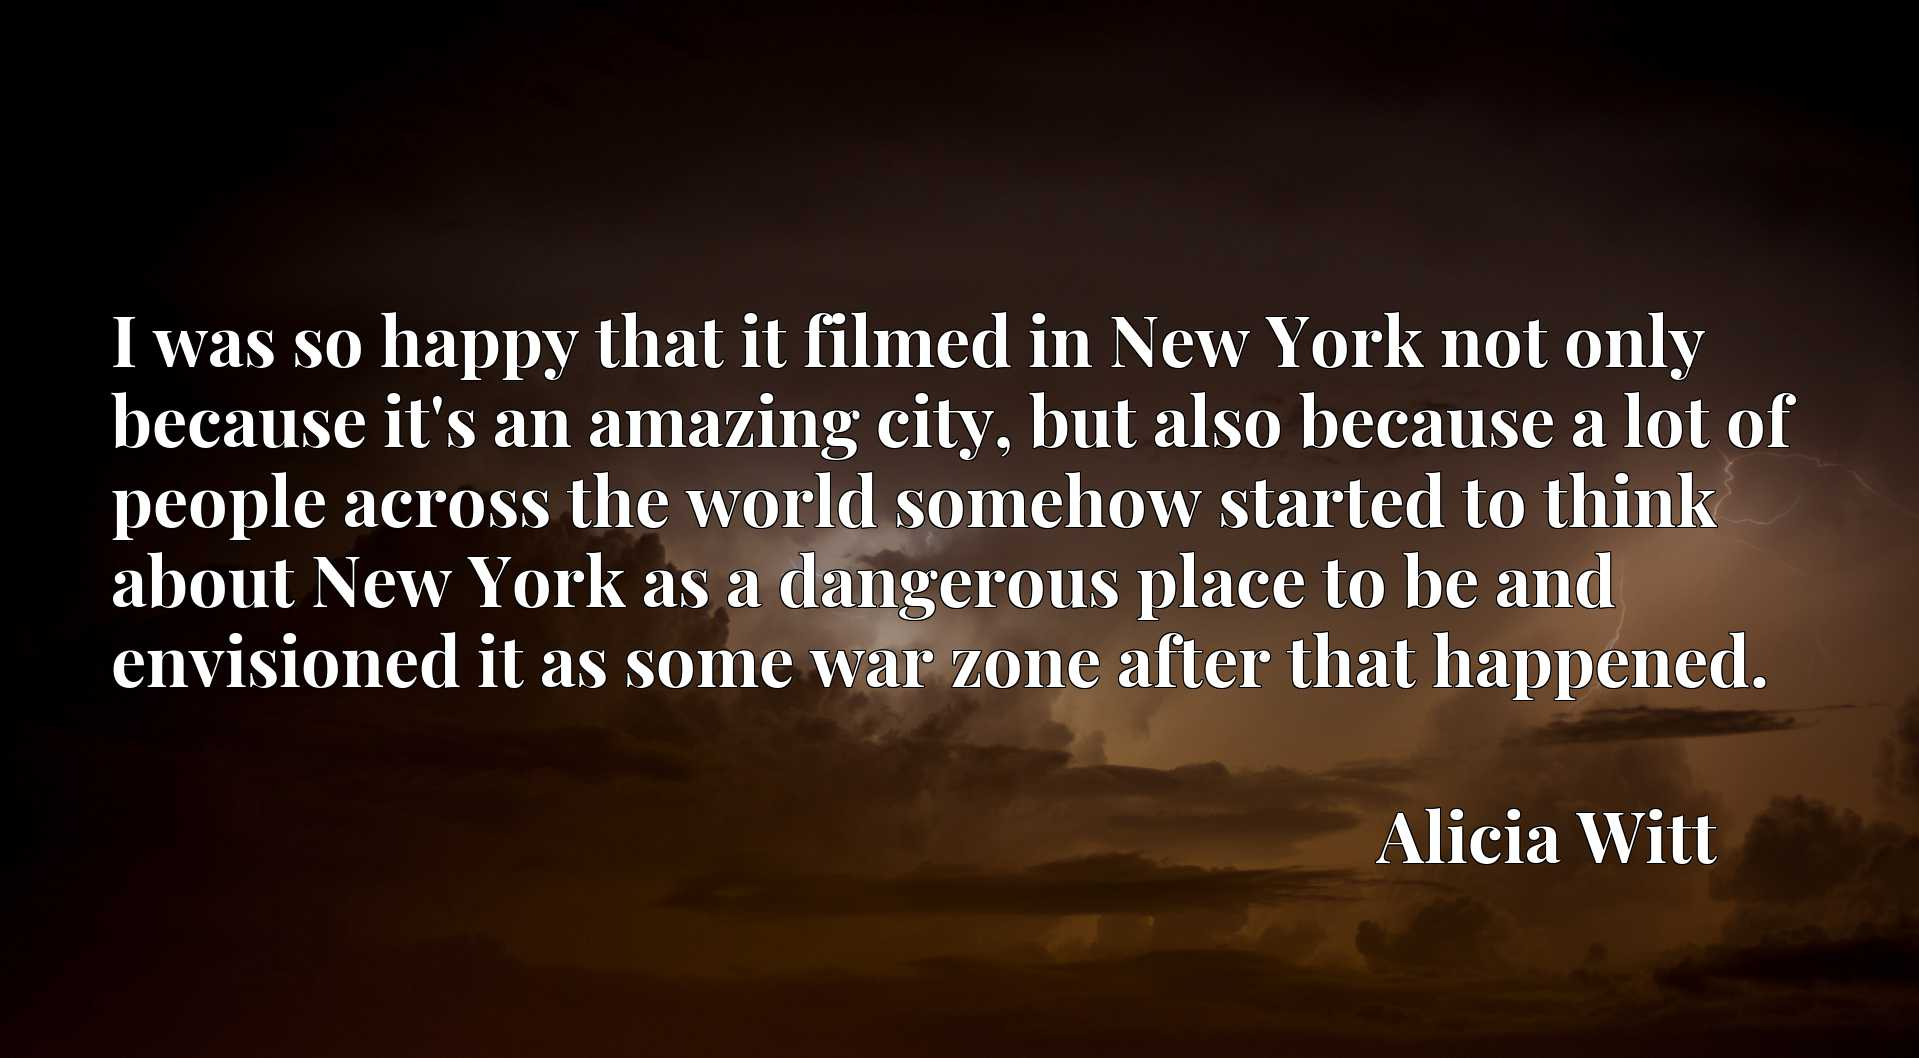 I was so happy that it filmed in New York not only because it's an amazing city, but also because a lot of people across the world somehow started to think about New York as a dangerous place to be and envisioned it as some war zone after that happened.